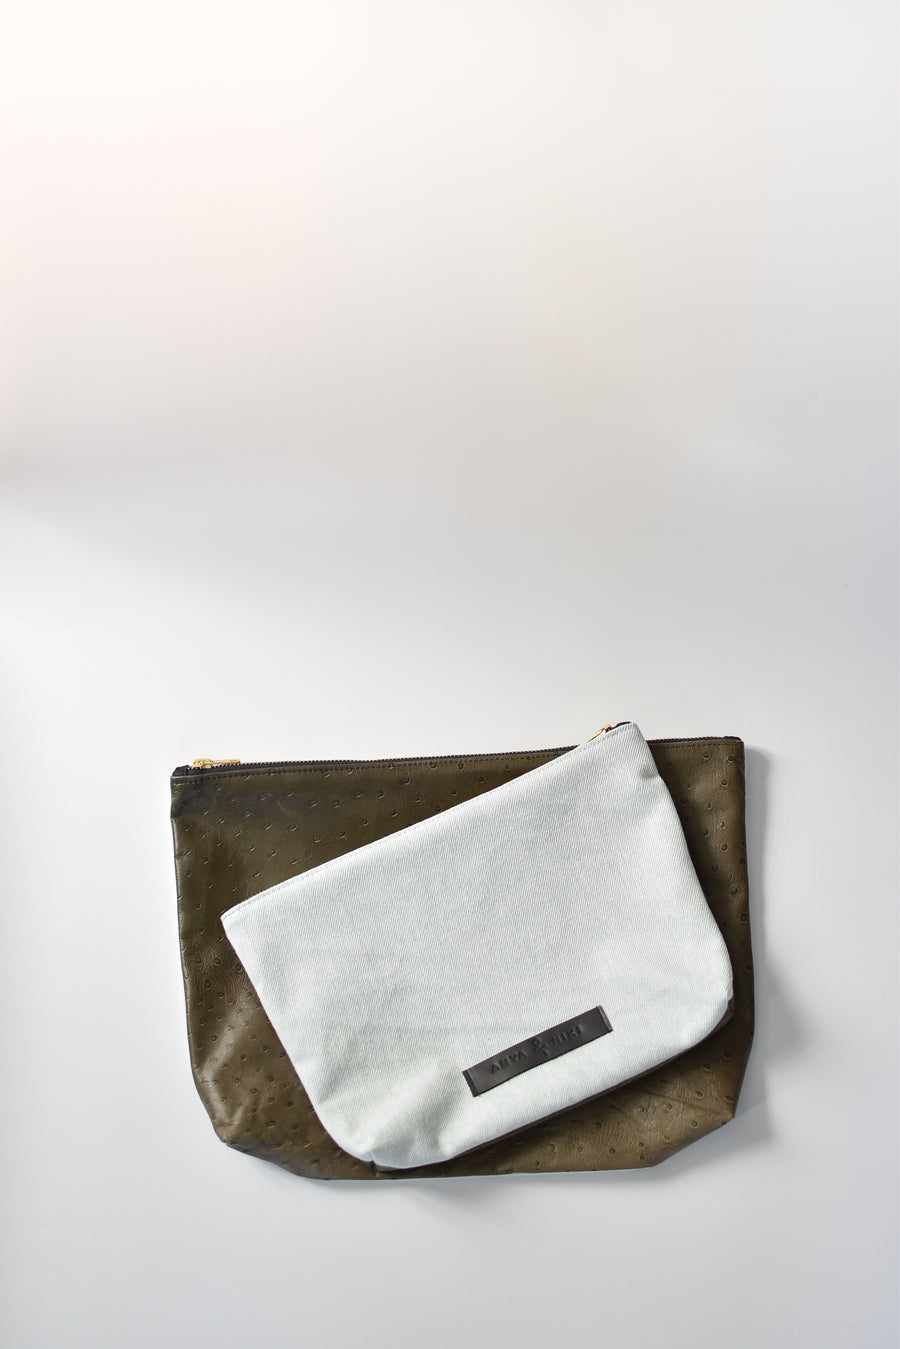 Bleached denim and fern colored embossed leather skin medium and large pouch with brass zipper and leather logo label.